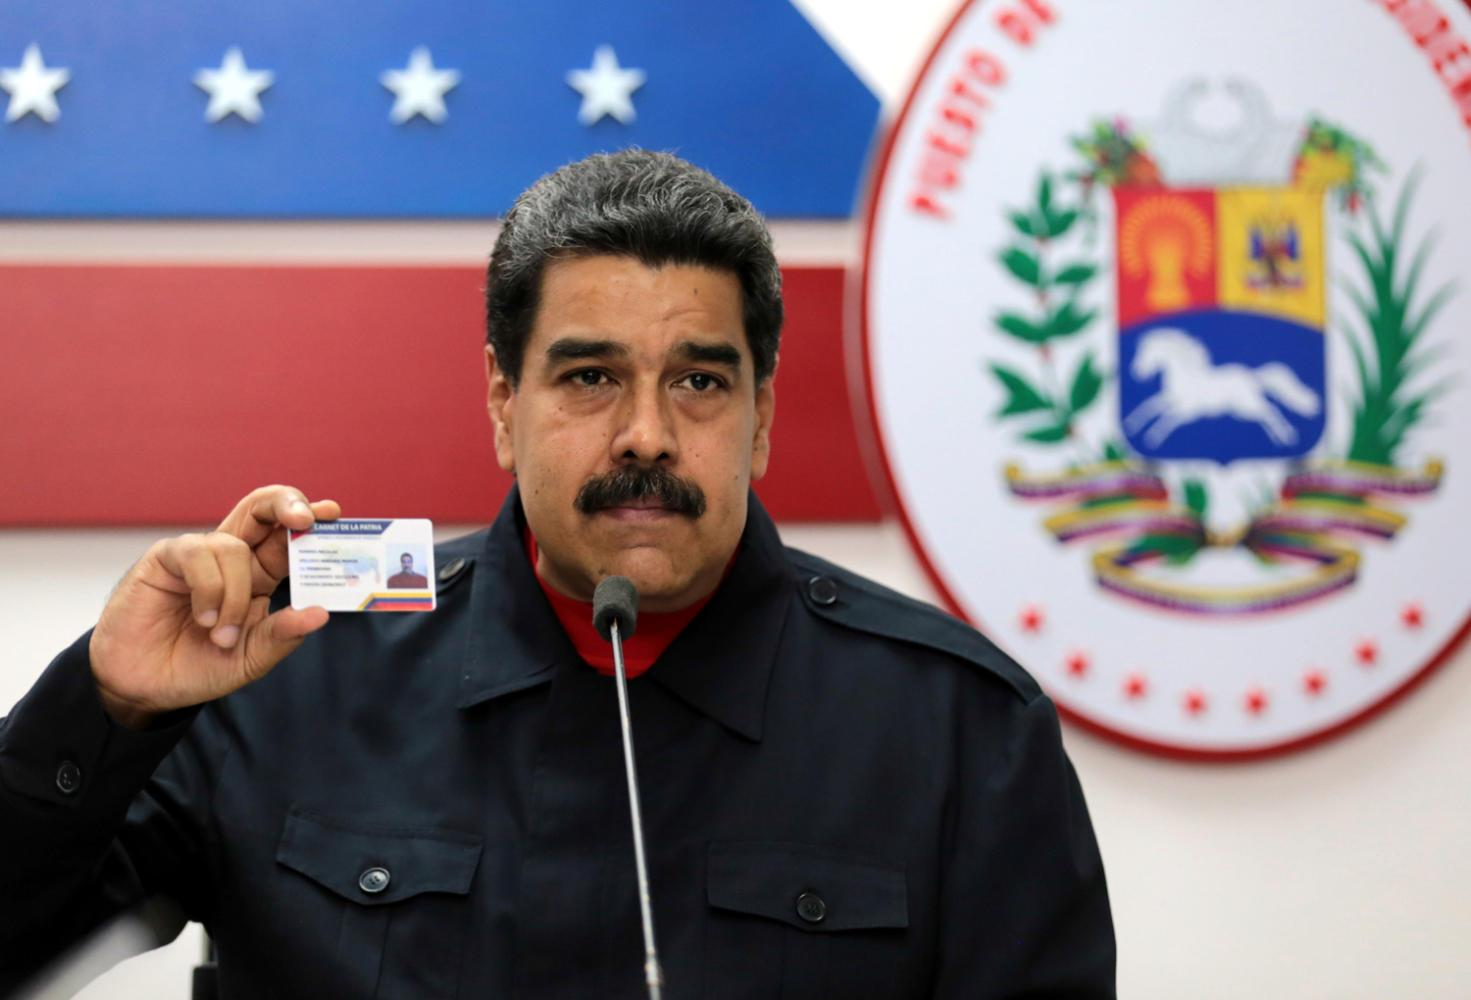 Venezuelan president Nicolas Maduro is pictured during a meeting at the Miraflores Palace in Caracas, Venezuela, on Oct. 15, 2017. The Trump administration imposed individual sanctions against 10 Venezuelans who are top allies of Maduro. (Xinhua/Venezuela's Presidency/Sipa USA/TNS)